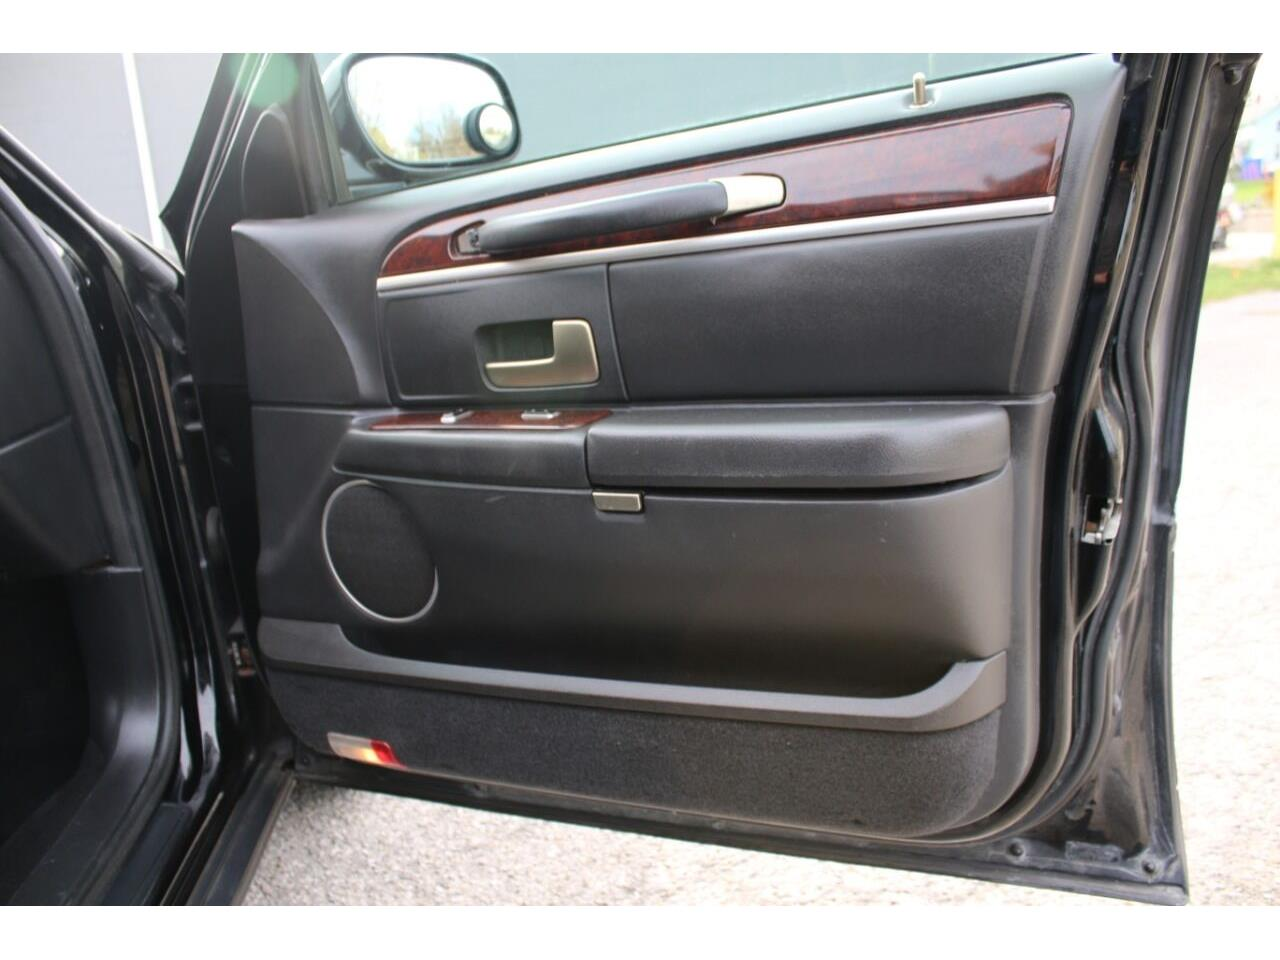 2007 Lincoln Town Car (CC-1420586) for sale in Hilton, New York